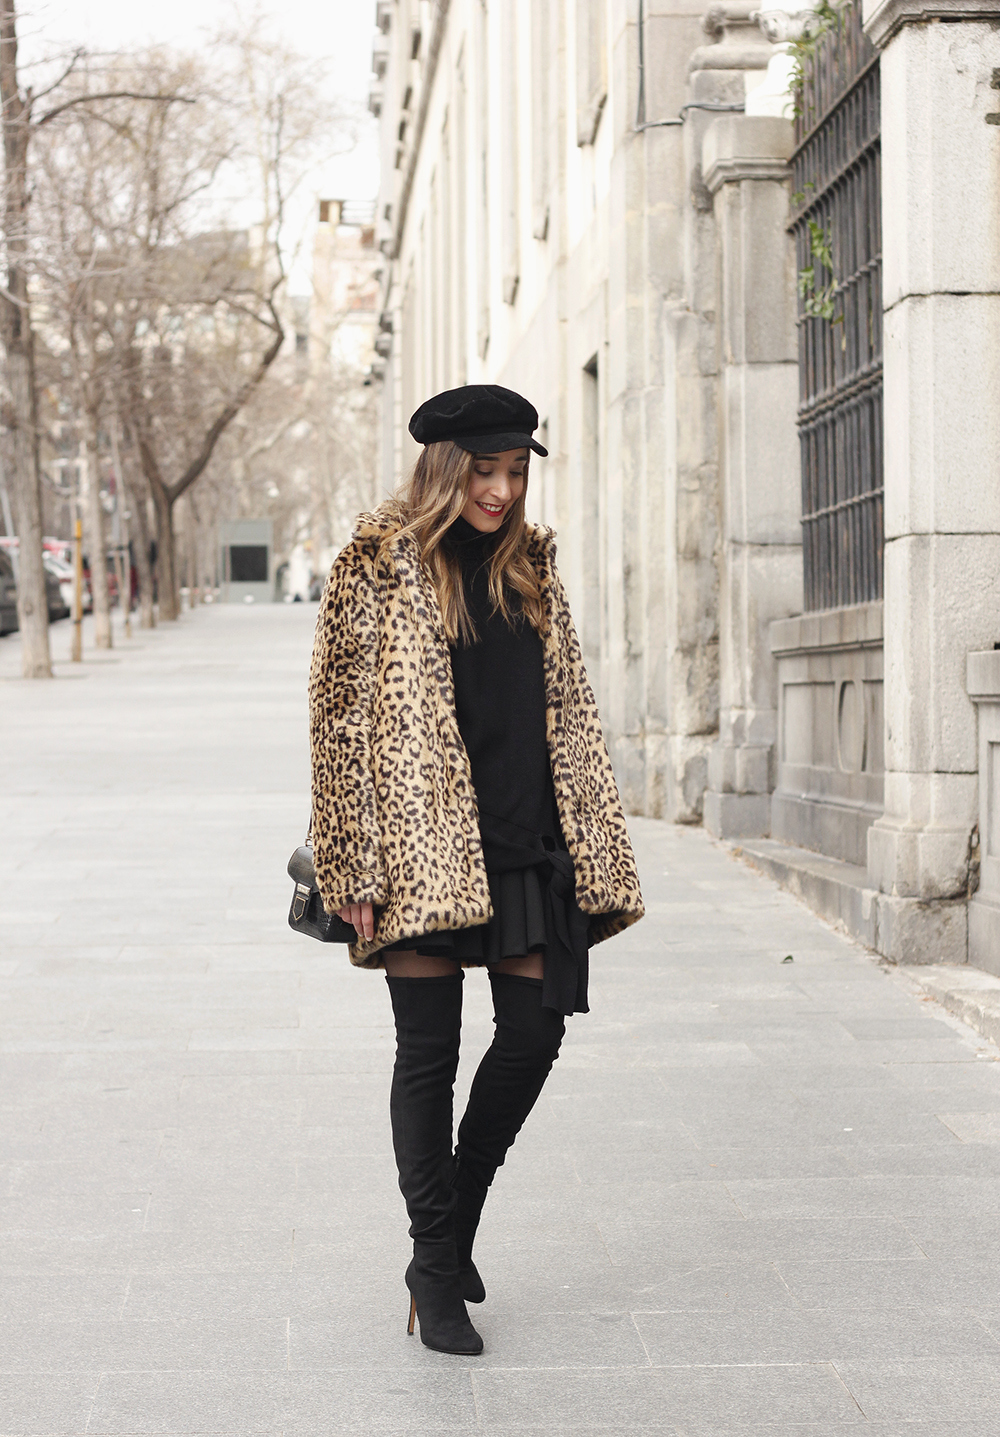 leopard coat black outfit over the knee boats givenchy black cap winter outfit07